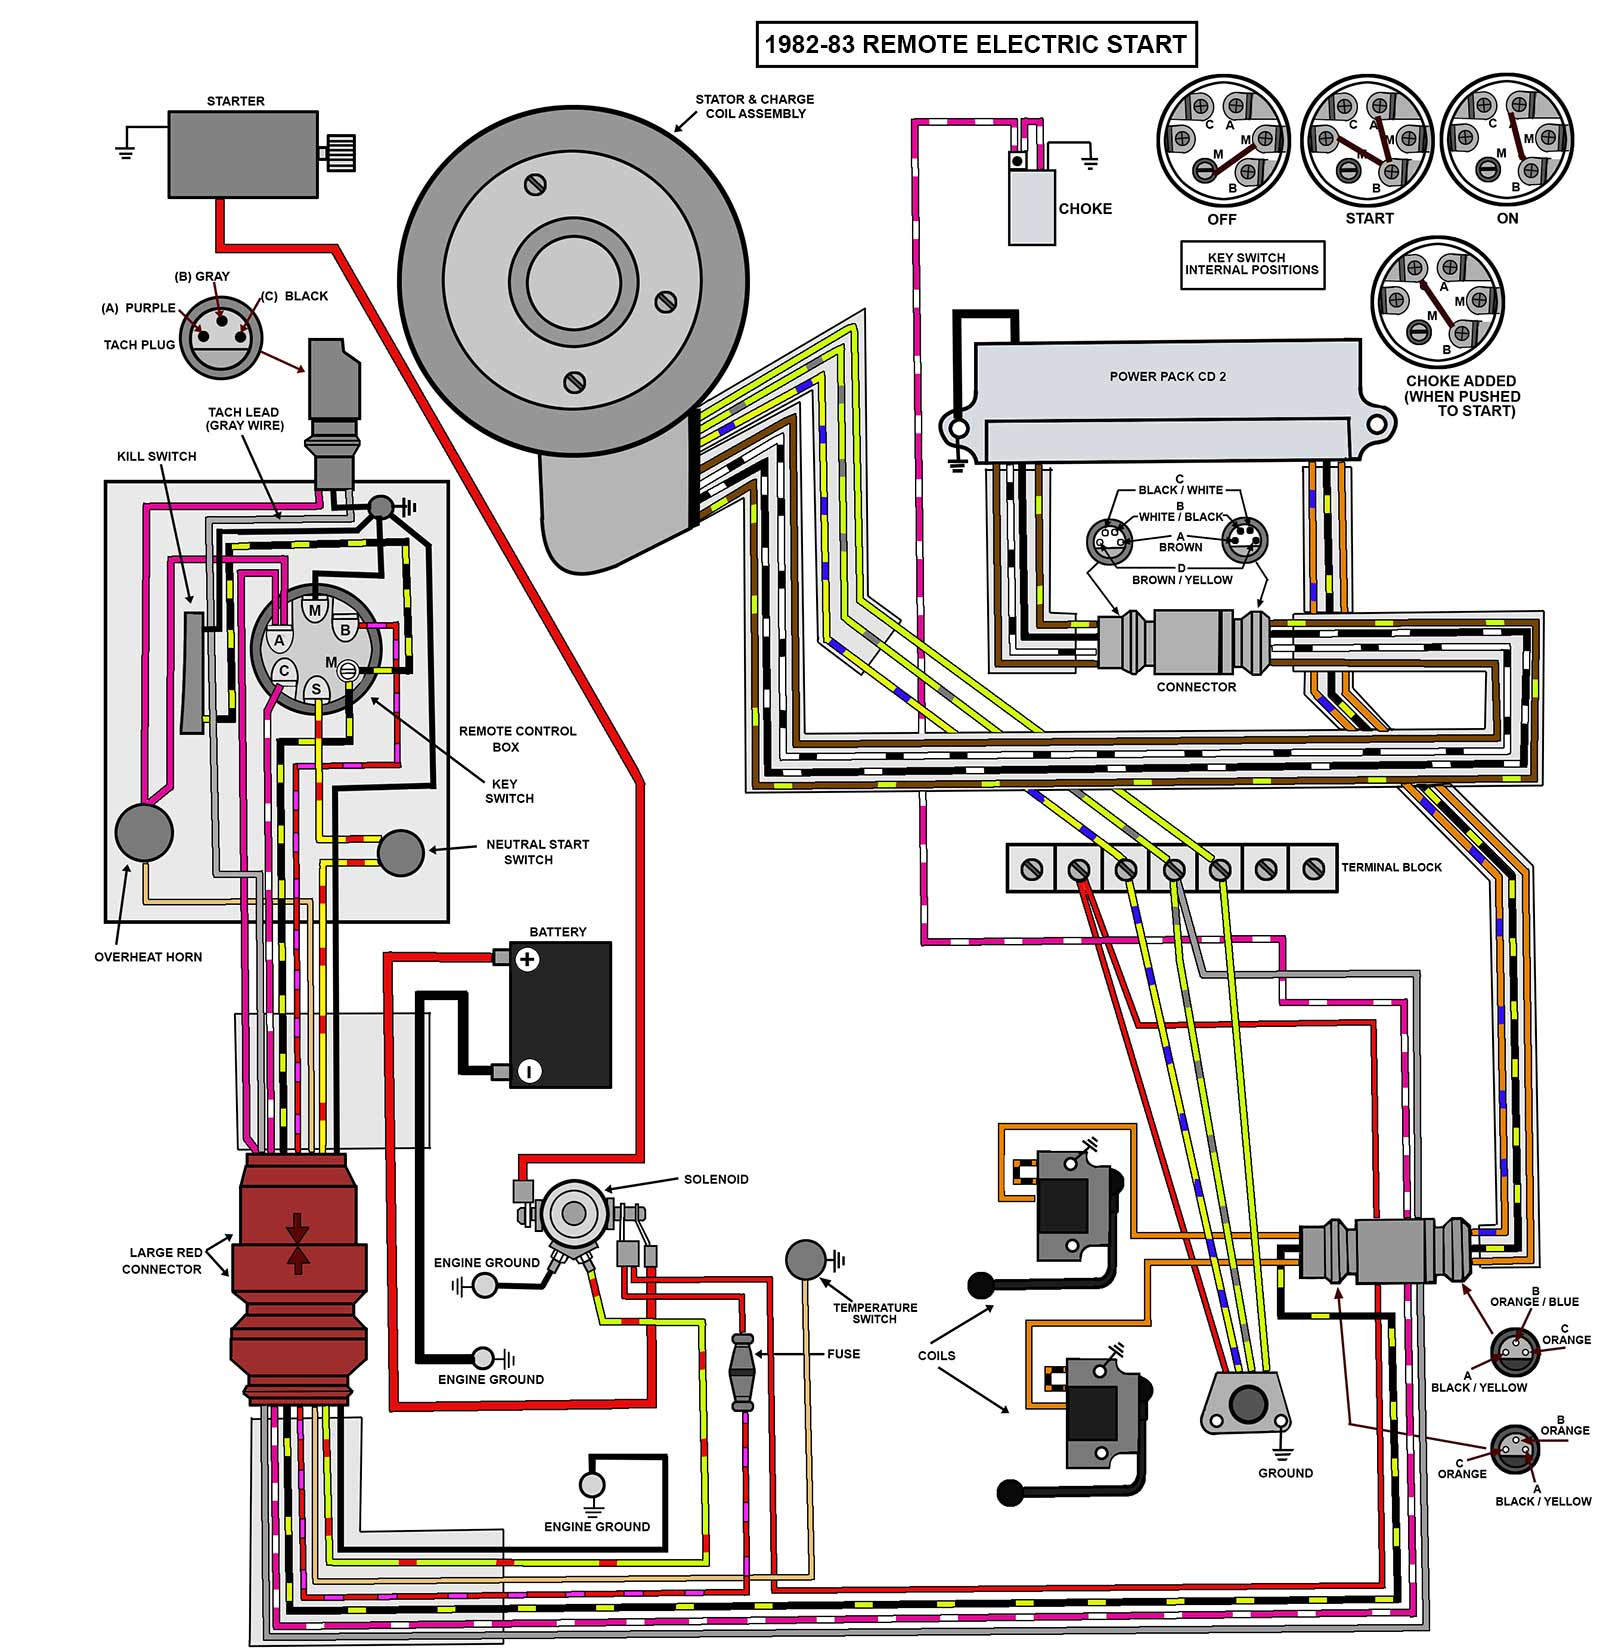 Mastertech Marine -- EVINRUDE JOHNSON Outboard Wiring Diagrams on johnson outboard controls diagram, johnson fuel system diagram, johnson motor diagram, johnson outboard wiring colors, yamaha outboard parts diagram, ignition switch diagram, yamaha control box diagram, johnson switch diagram, boat diagram, 50 hp johnson parts diagram, 50 hp evinrude parts diagram, johnson fuel filter diagram, johnson ignition wiring diagram, 50 hp johnson outboard diagram, johnson 90 wiring diagram, johnson control box diagram, johnson outboard wiring harness, johnson carburetor diagram, johnson 40 hp wiring diagram, johnson 115 wiring diagram,